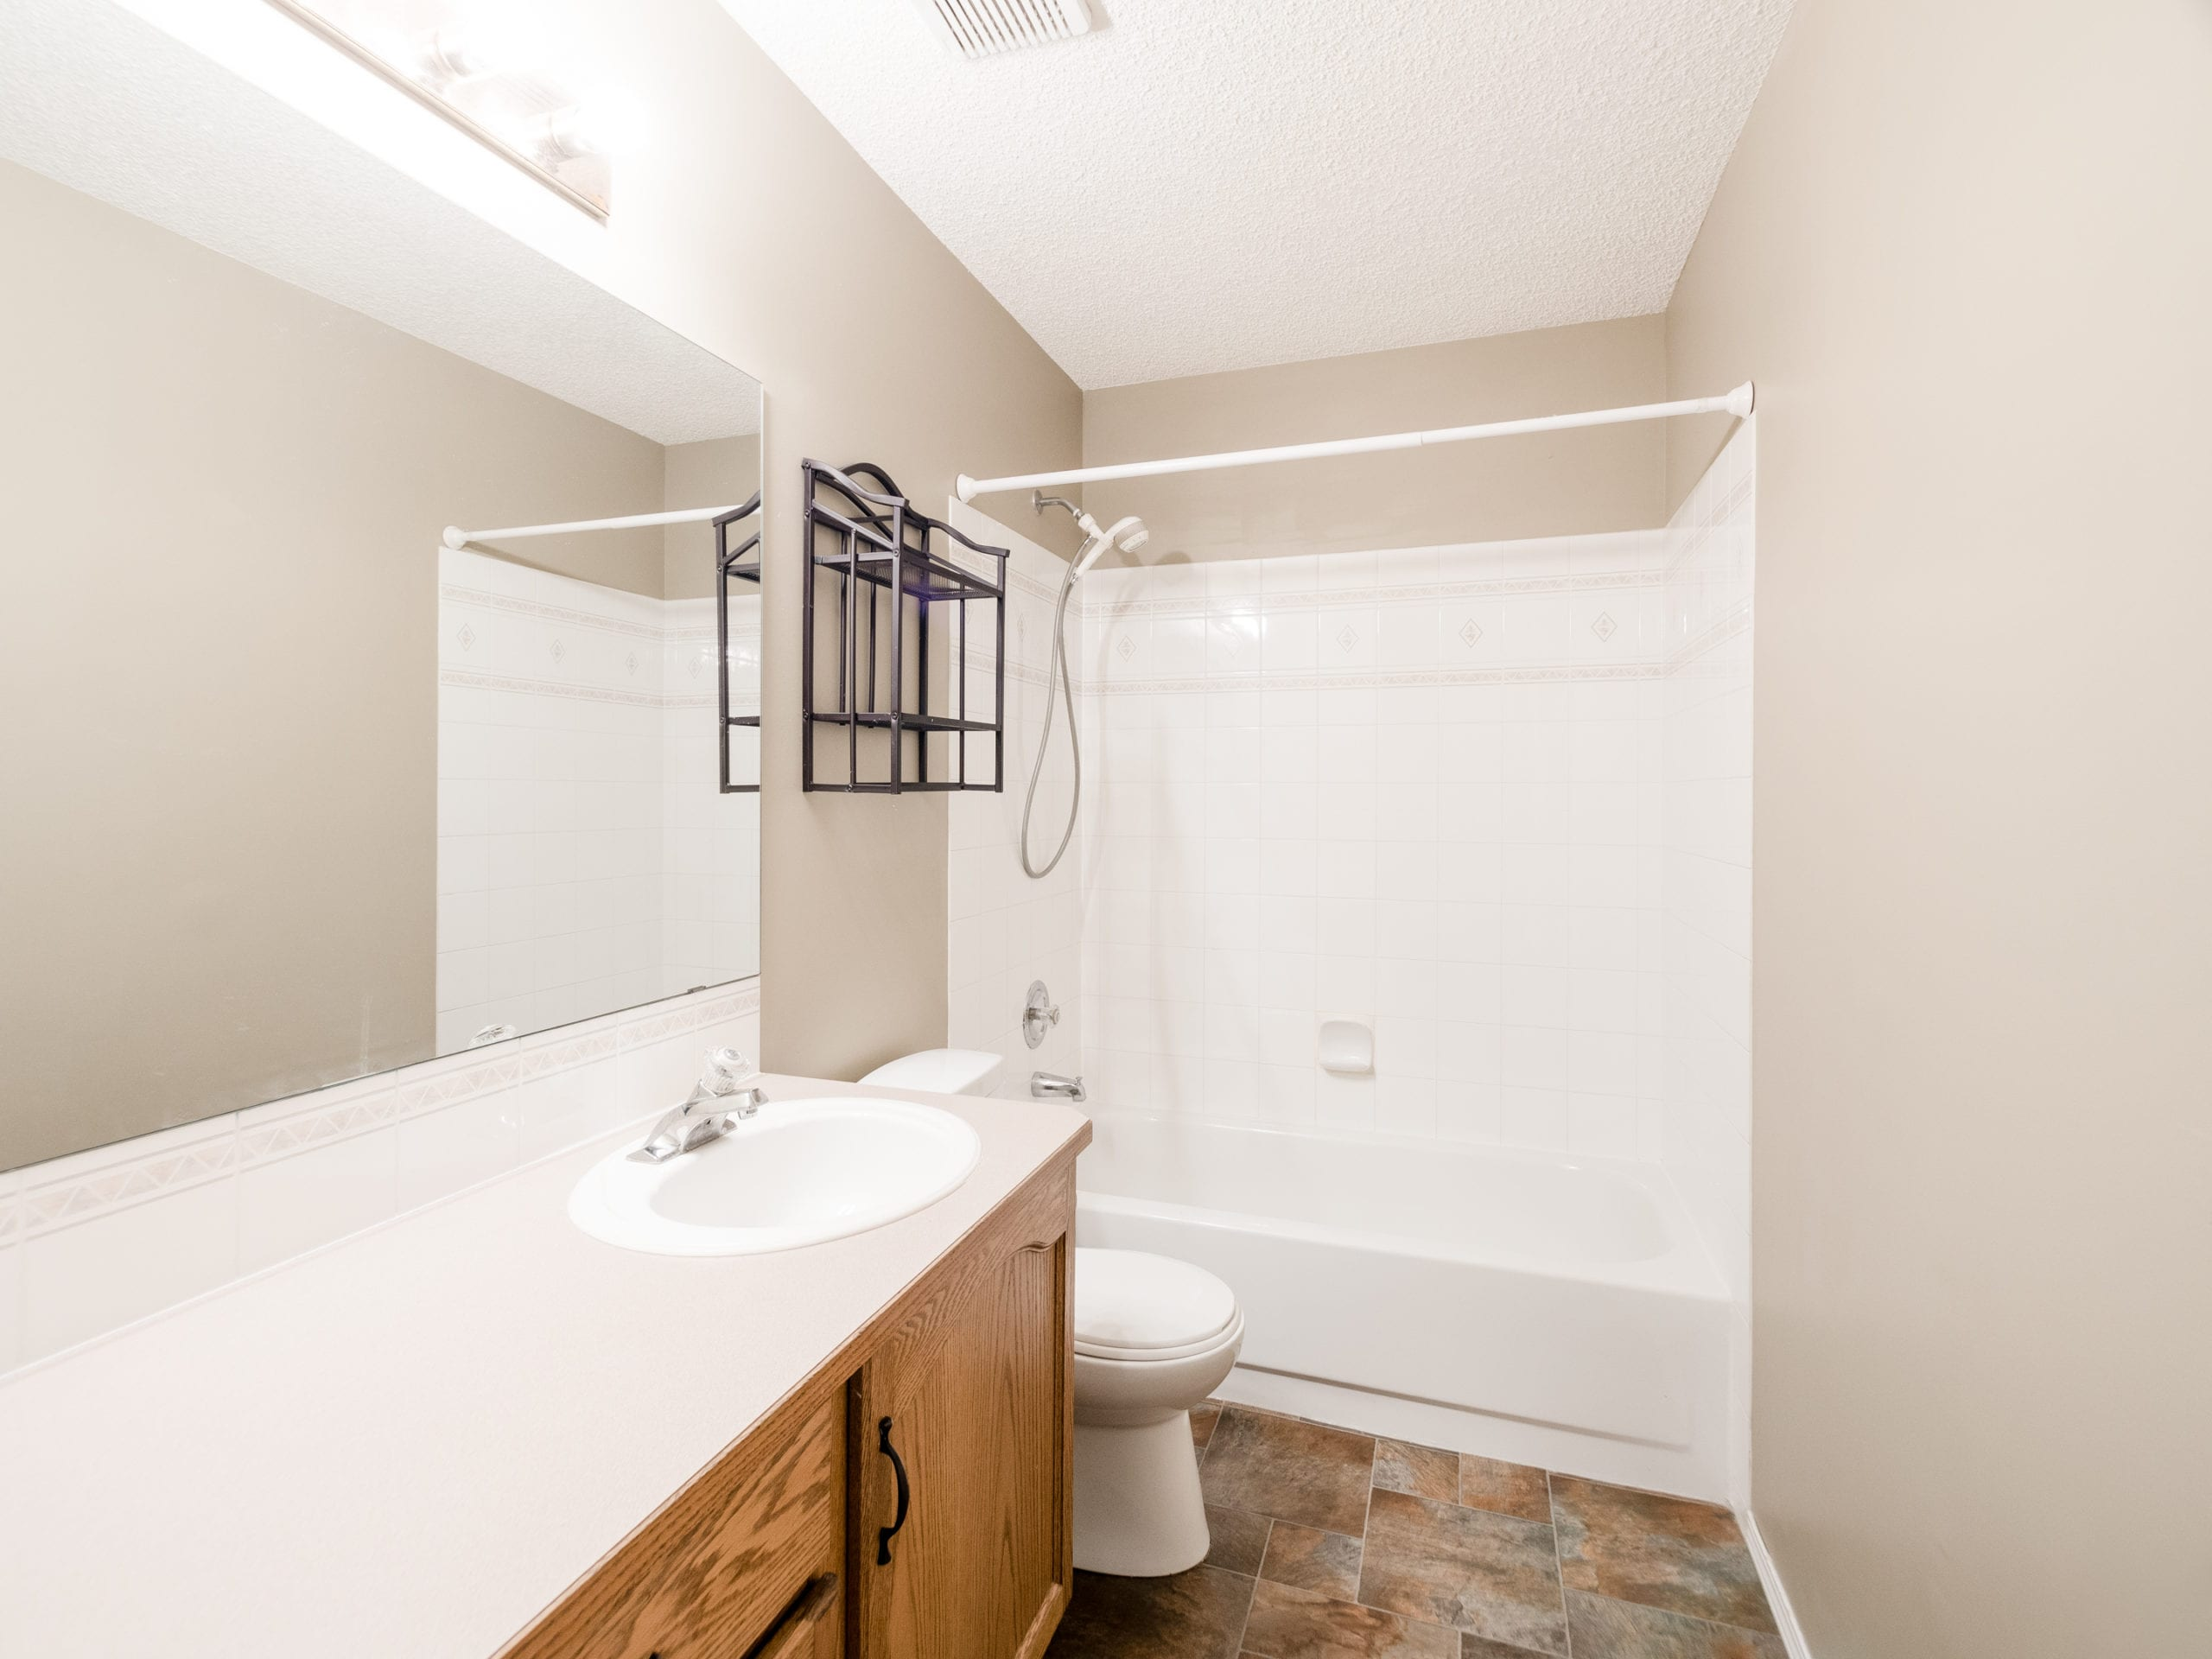 Hello Gorgeous - 143 Woodside Road NW, Airdrie AB. - Tara Molina Real Estate (38 of 54)